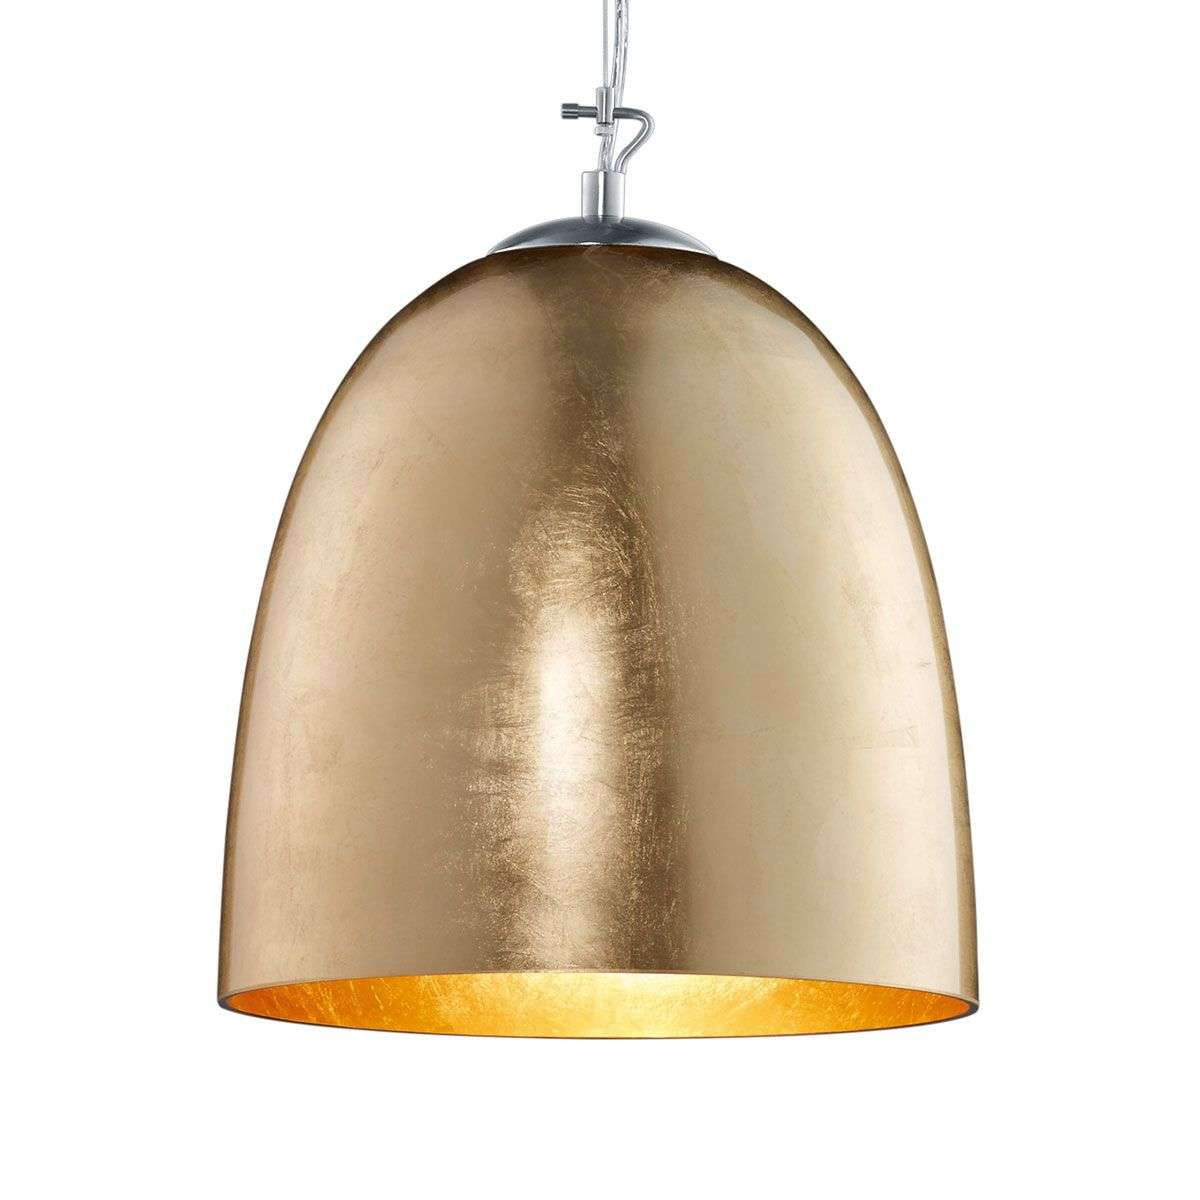 Ontario Gold Pendant Light Made Of Glass 9005115 31